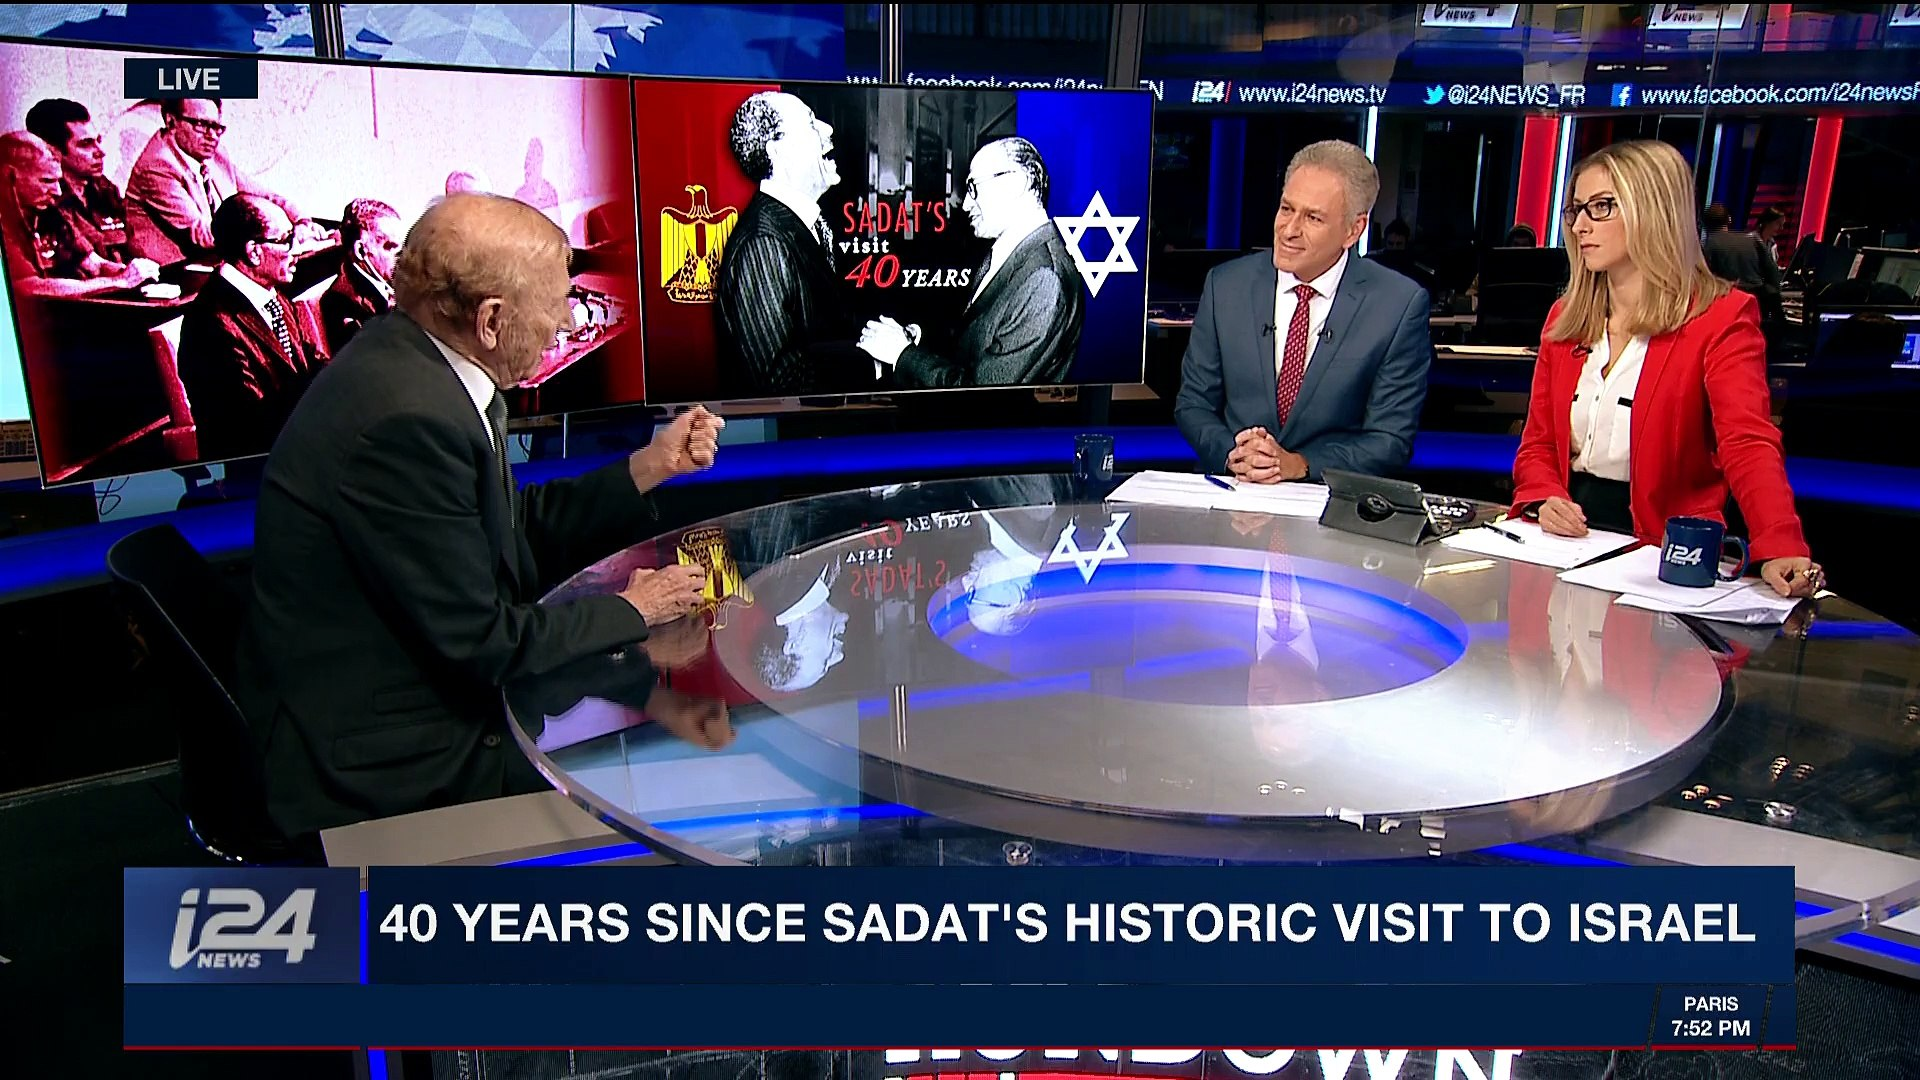 THE RUNDOWN | Sadat's visit reshaped the Middle East | Tuesday, November 21st 2017